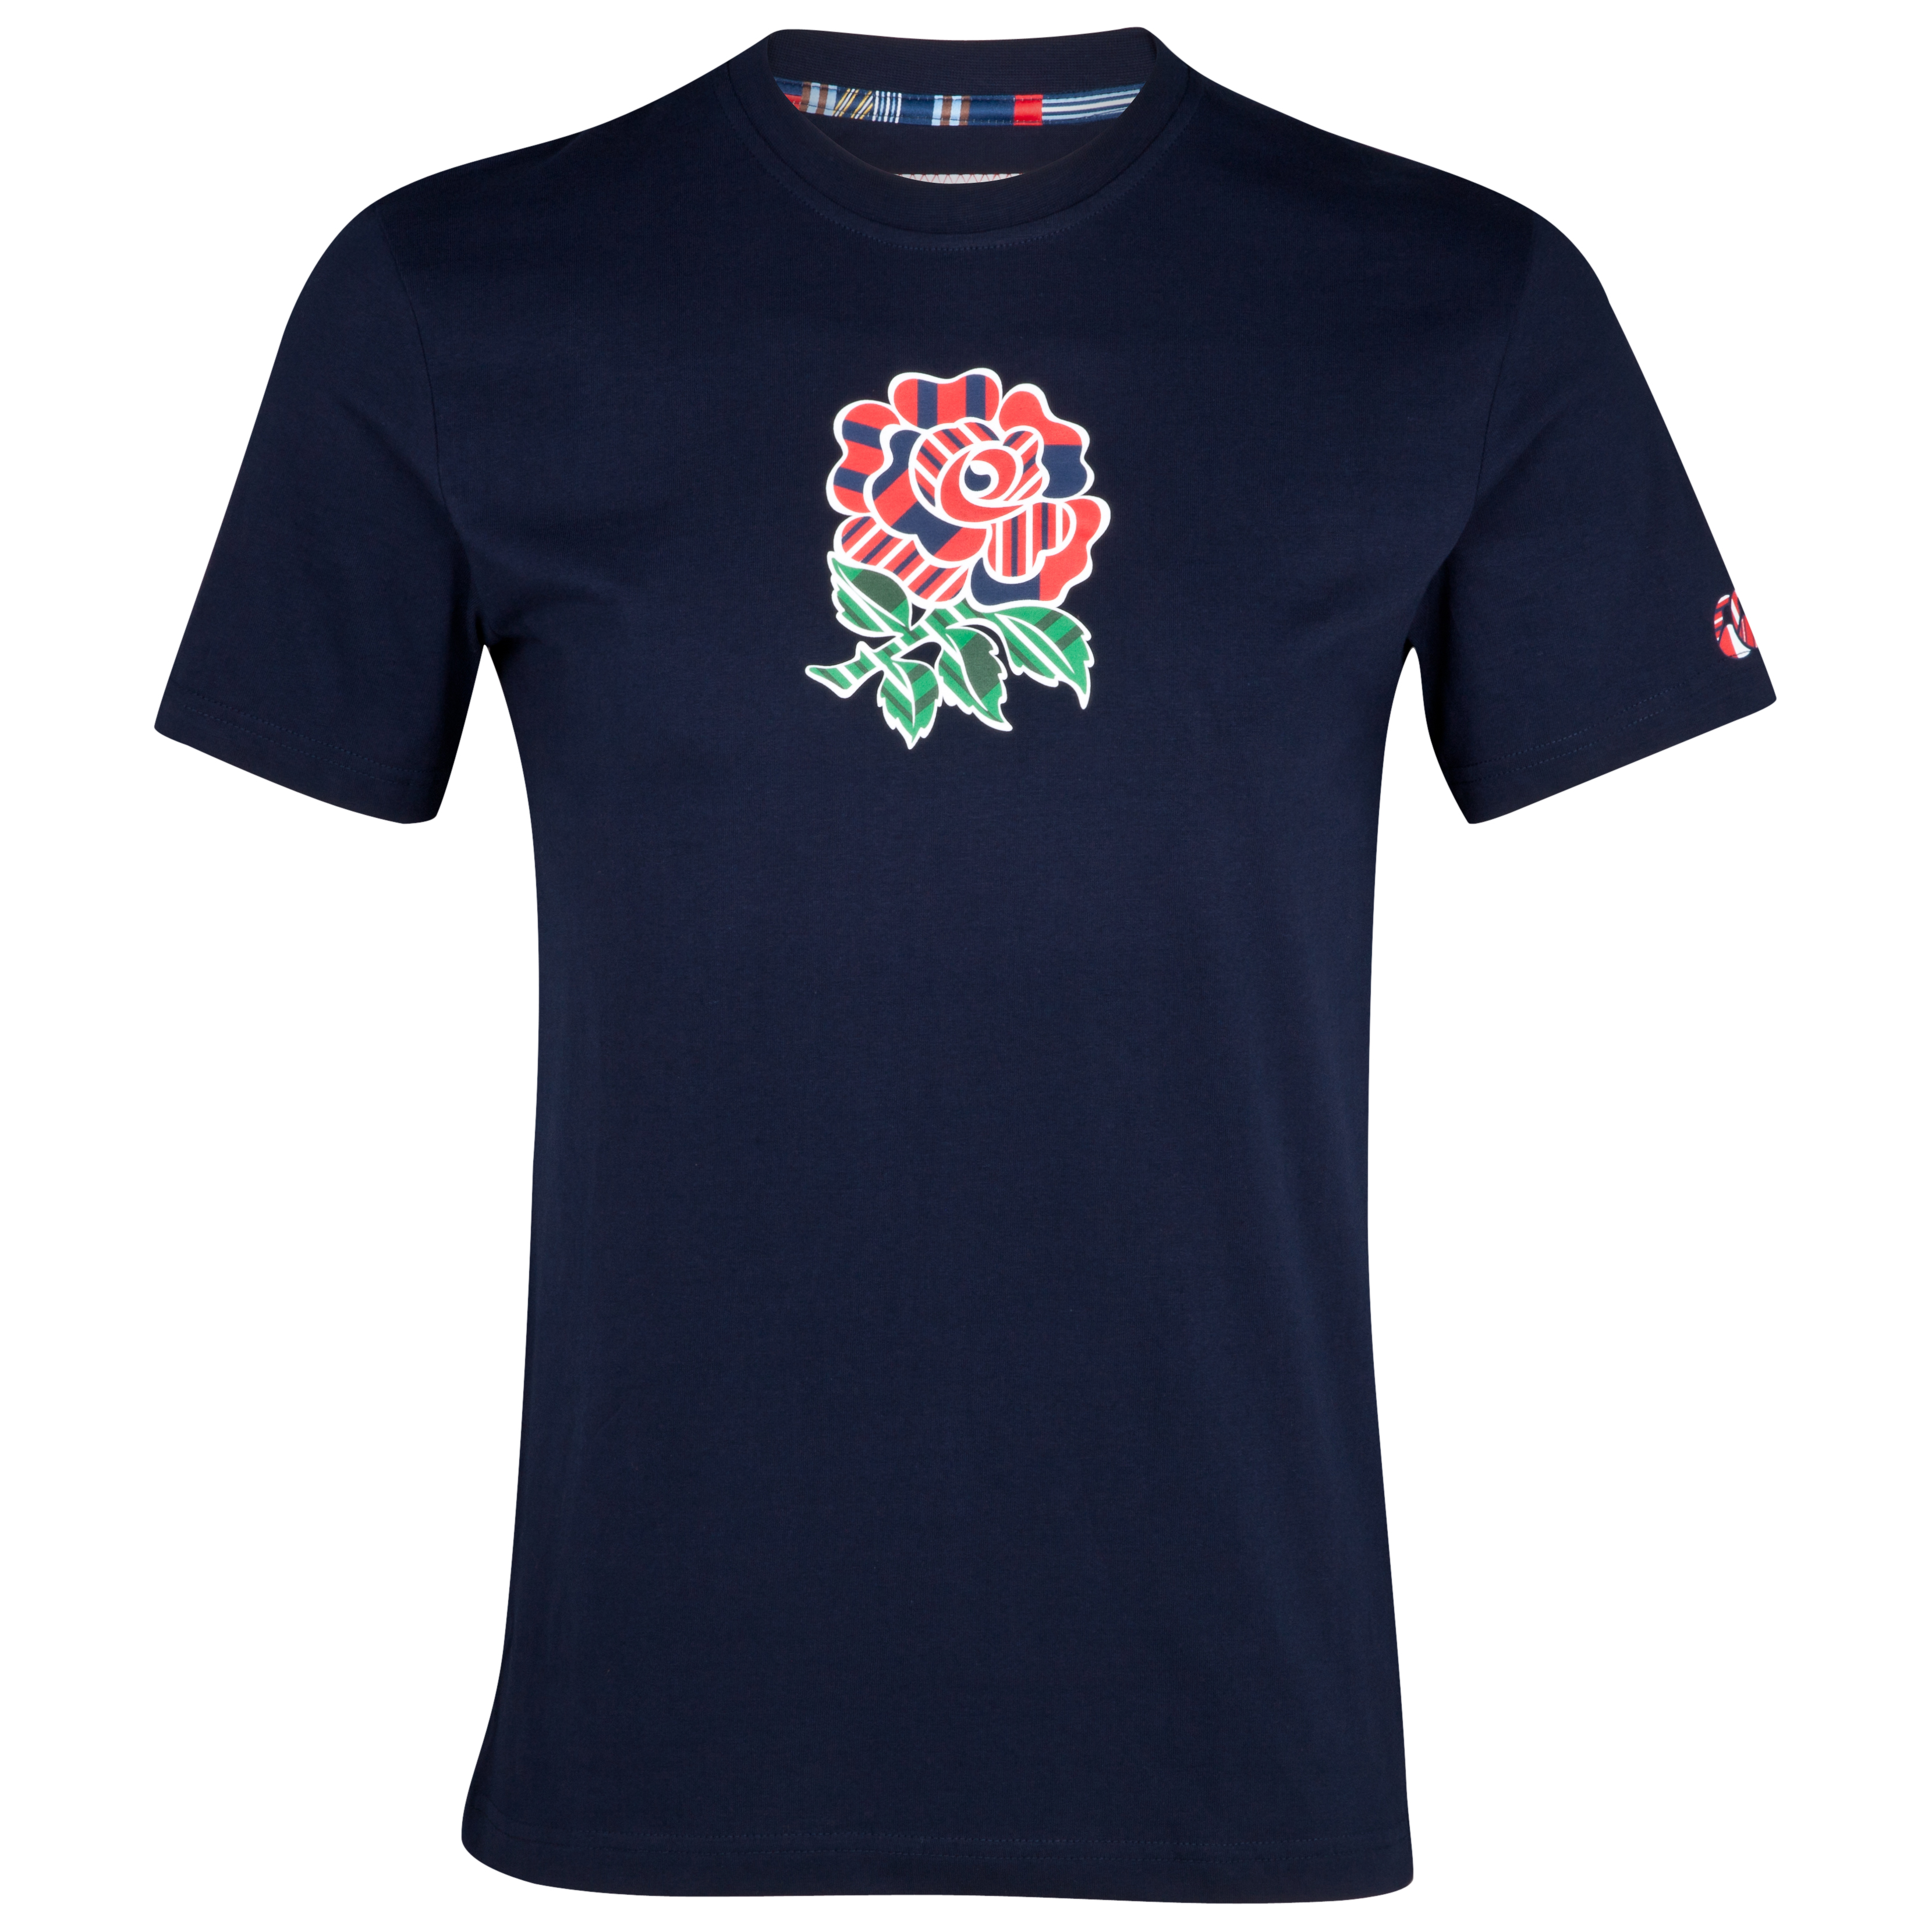 England Uglies Cotton T-Shirt  - Kids